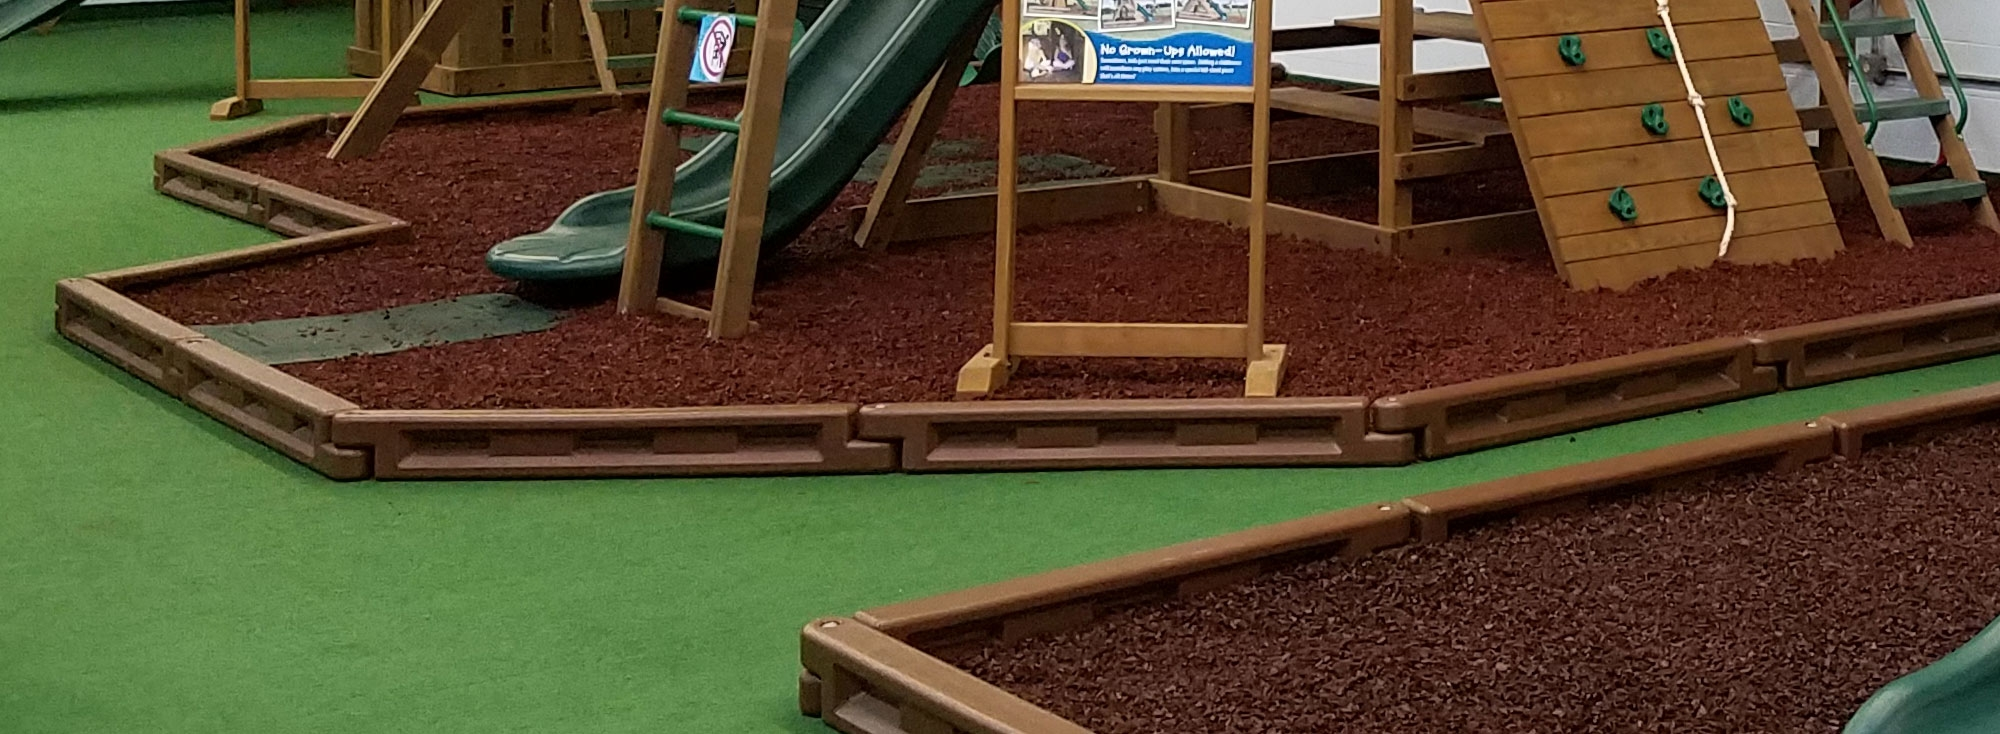 Creative Playthings rubber mulch playset surfacing